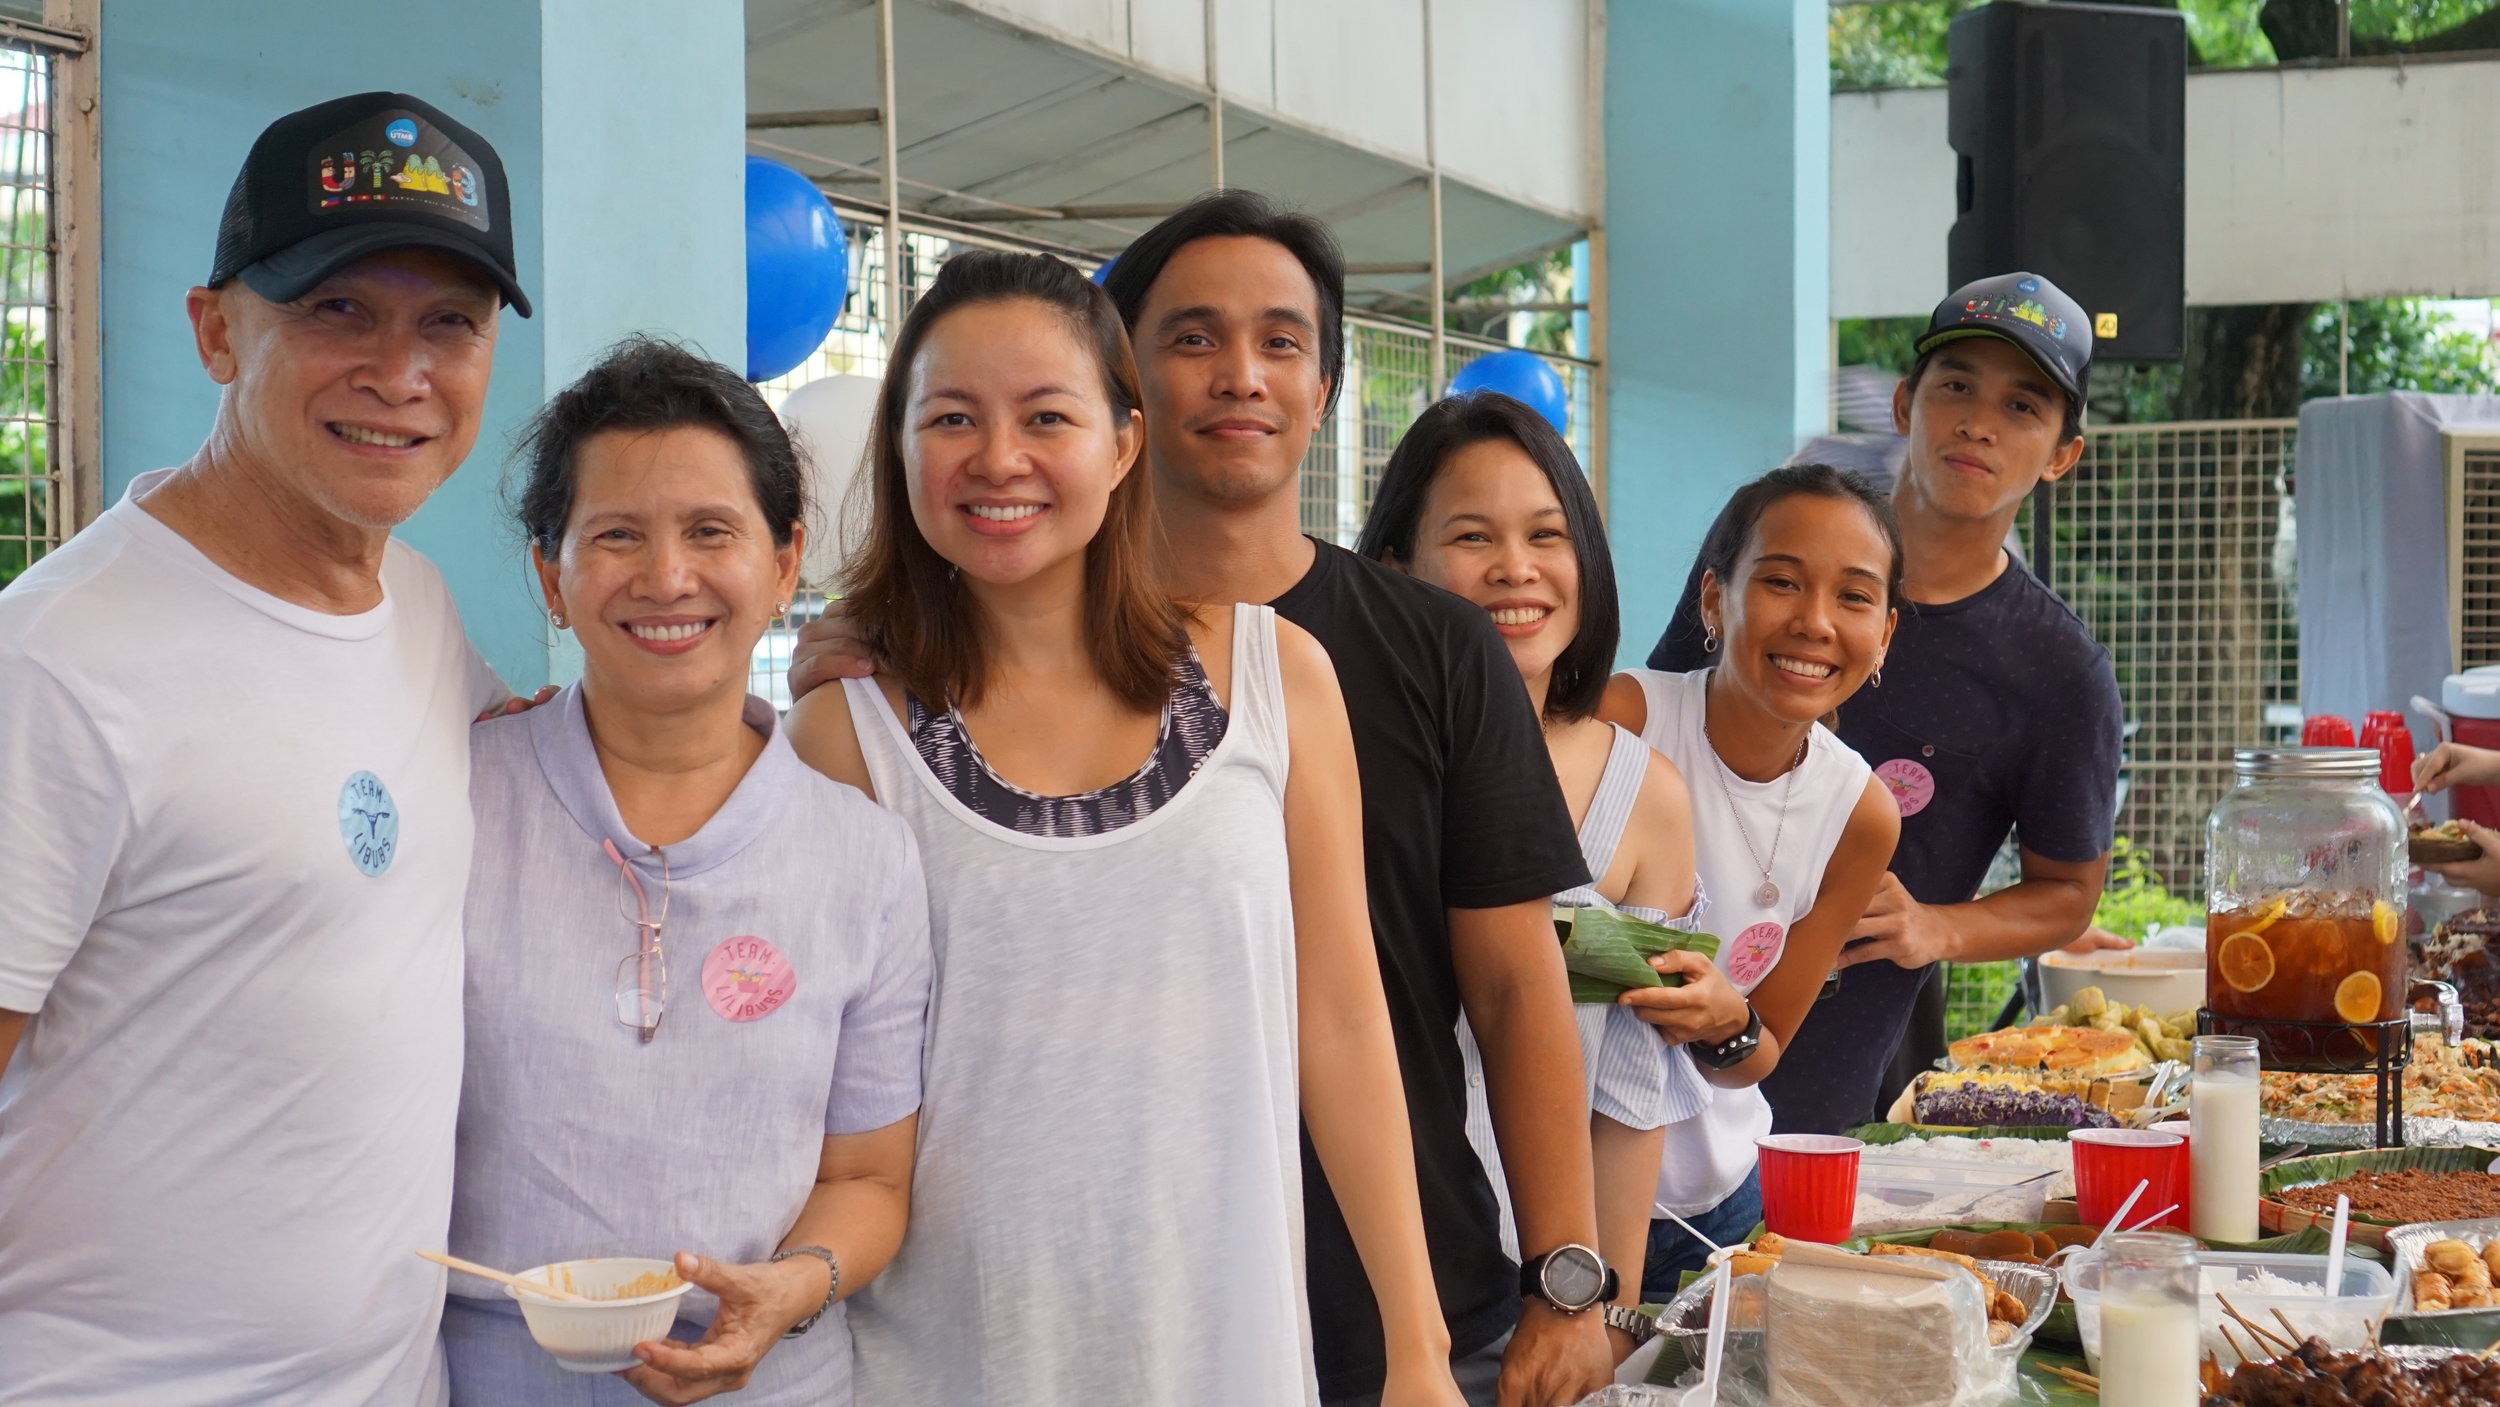 The Ramirezes manning the buffet table. Daddy Dan and Mommy Jing batting for different teams! :D